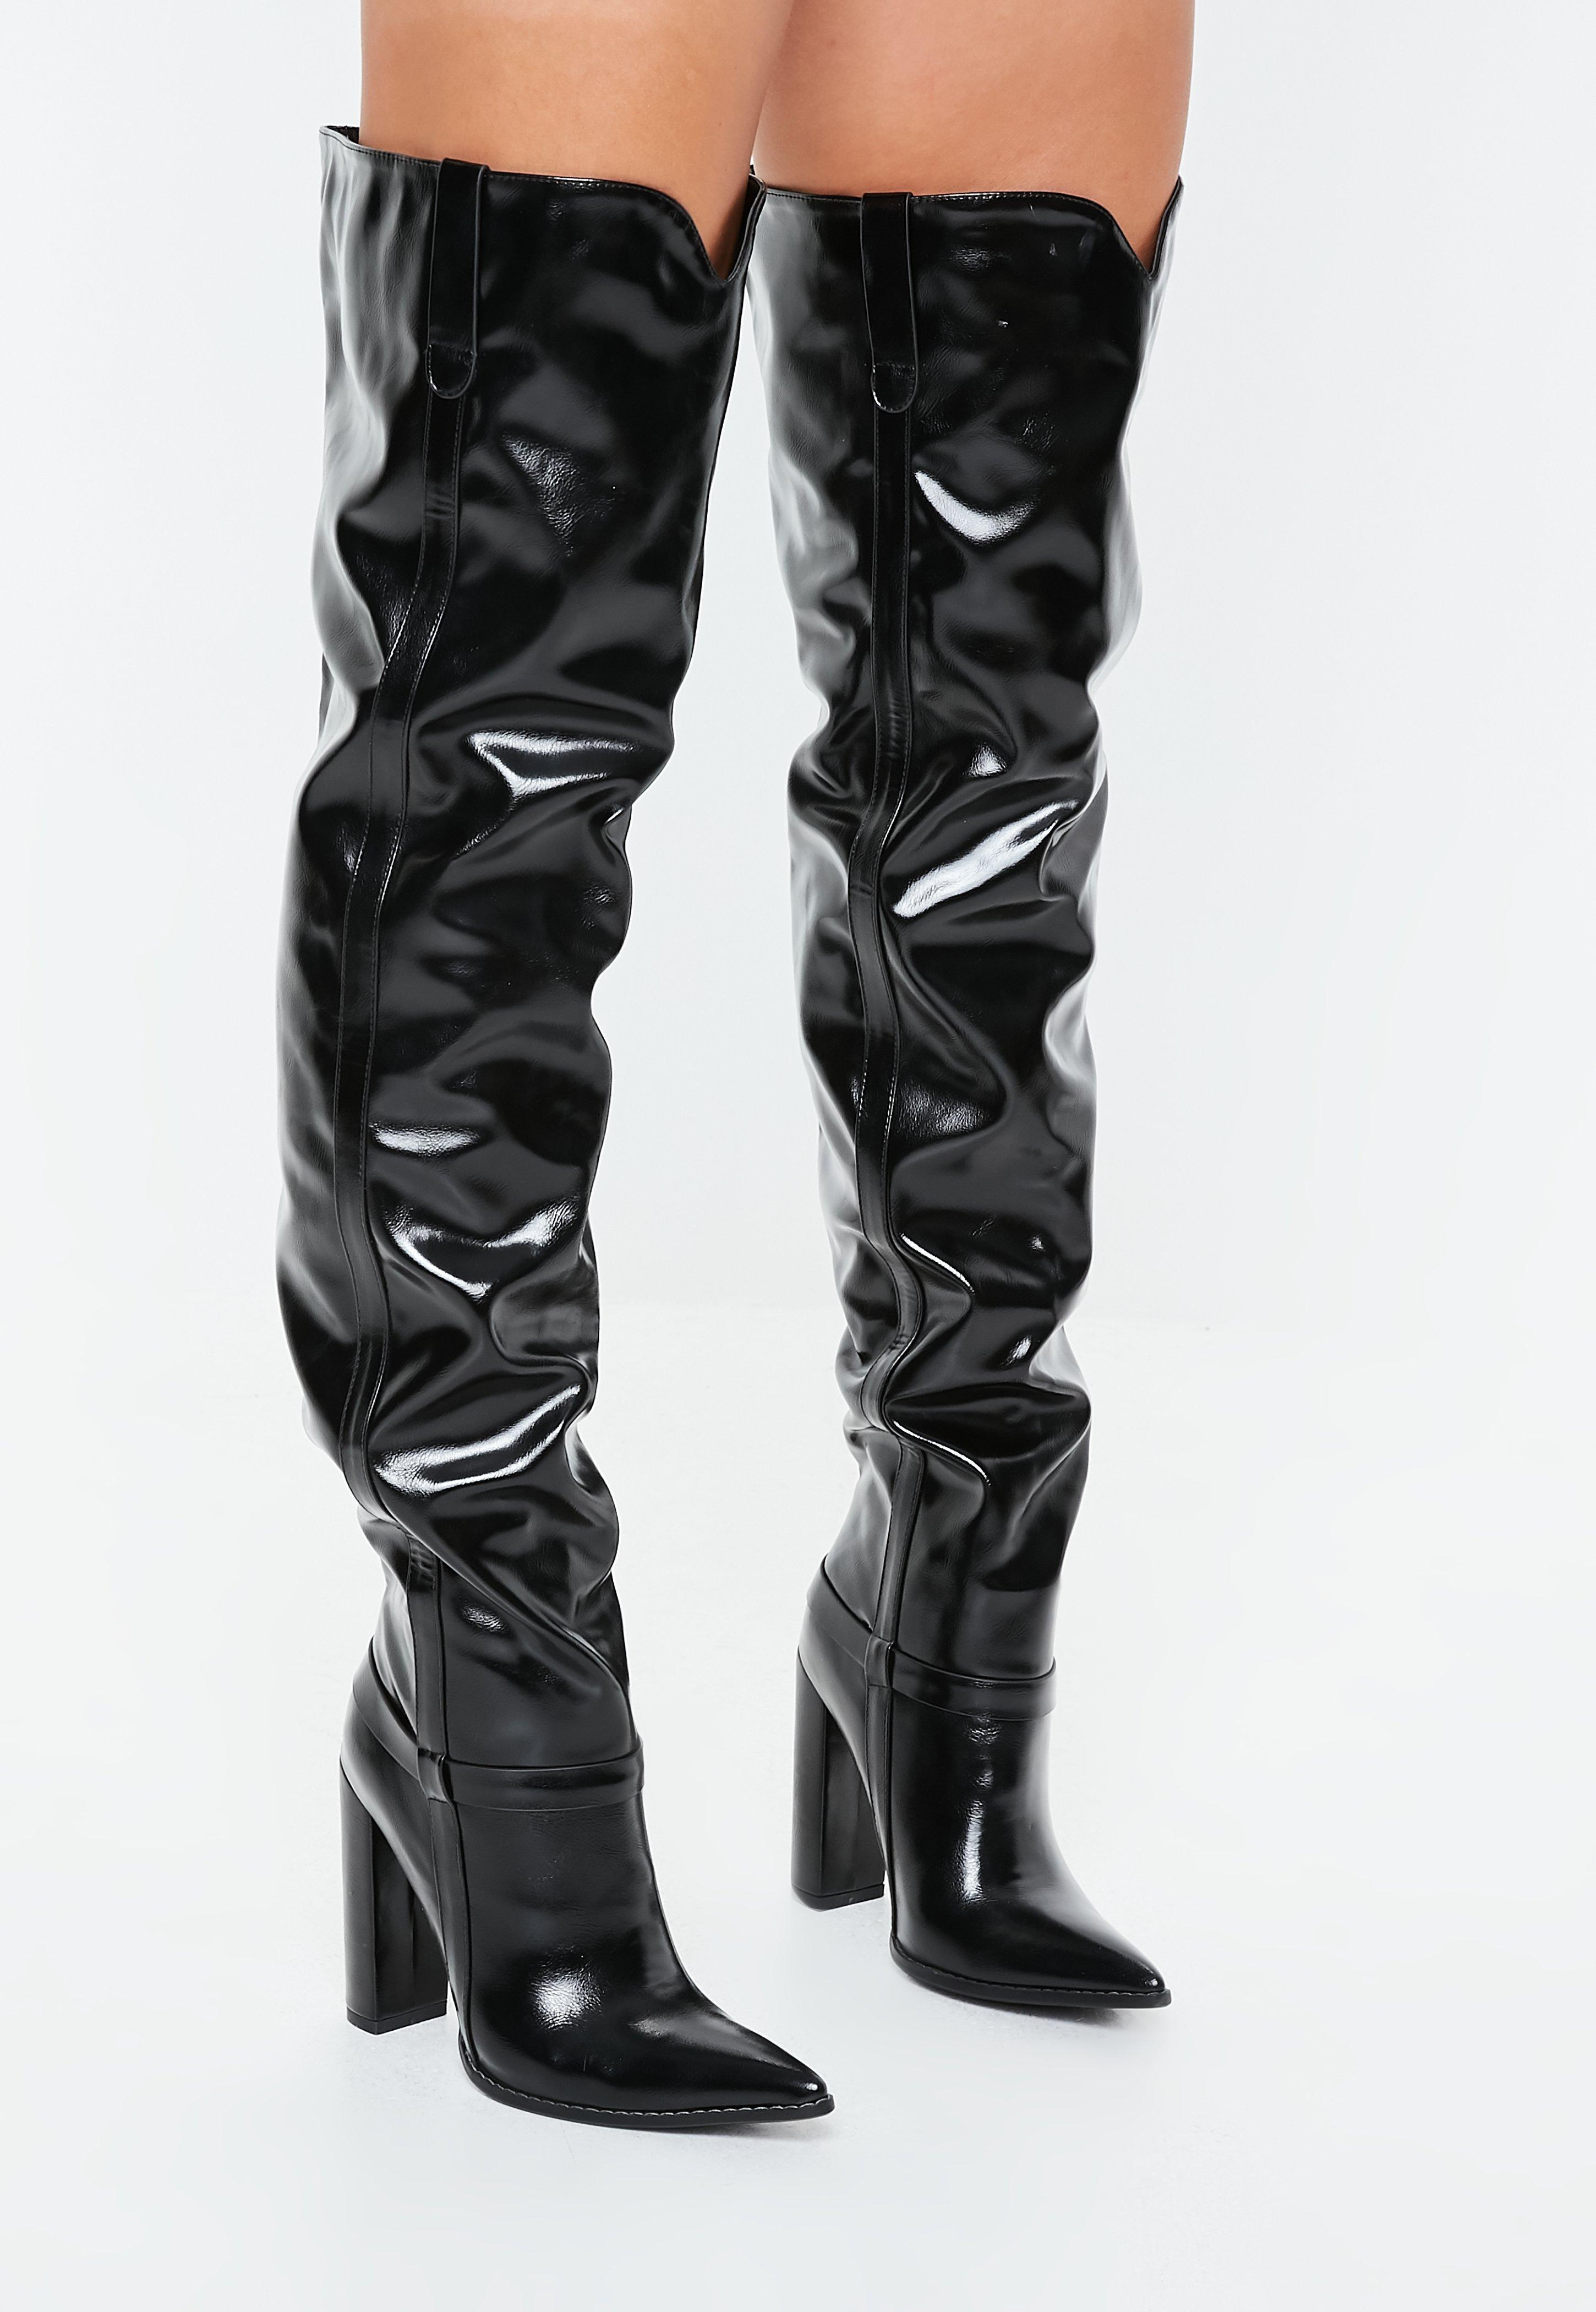 3e1f11f8026 Black Block Heel Faux Leather Thigh High Boots